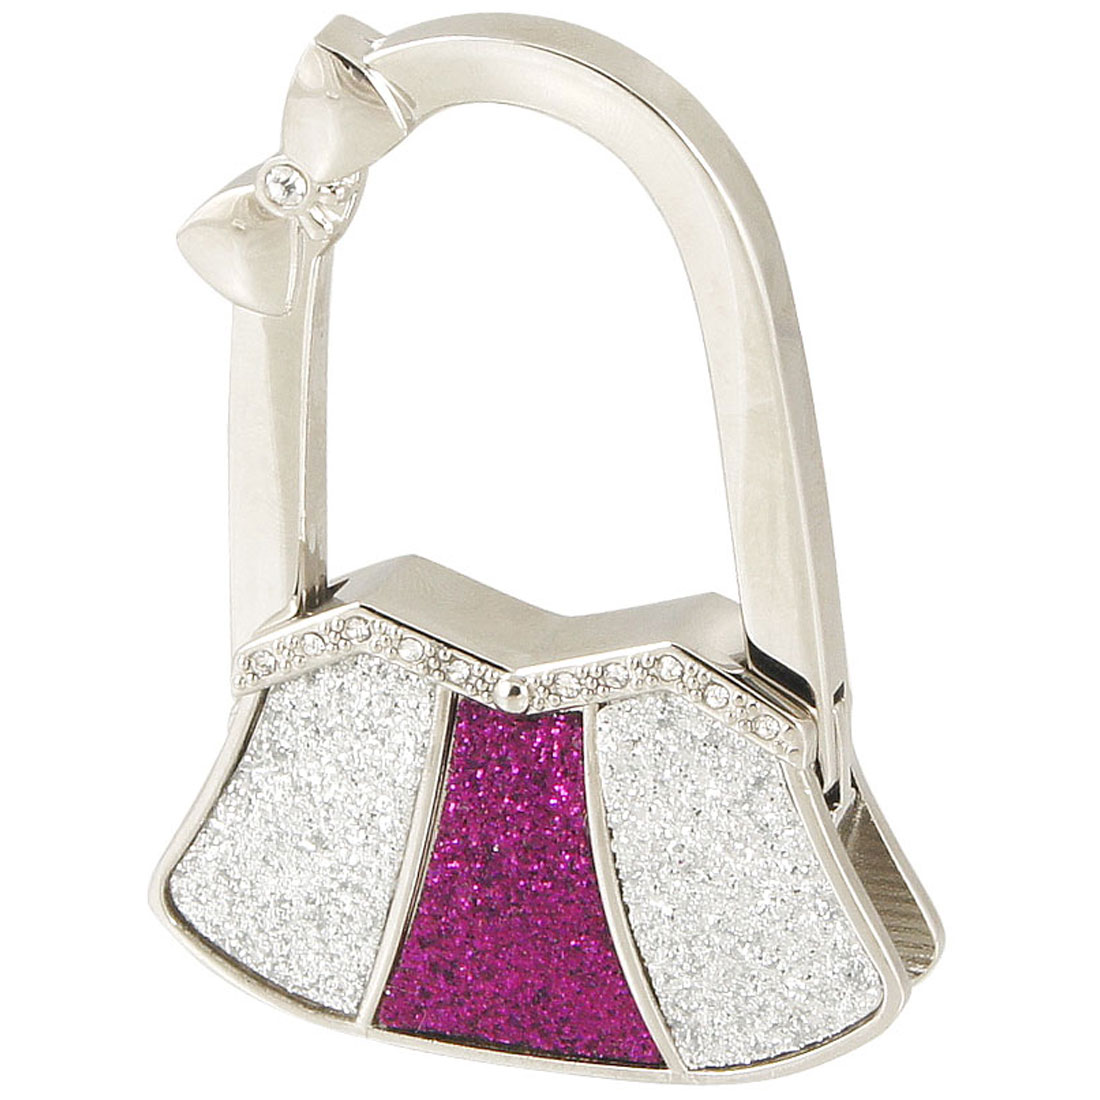 Glittery Silver Tone Purple Bag Shaped Metal Folding Handbag Hook